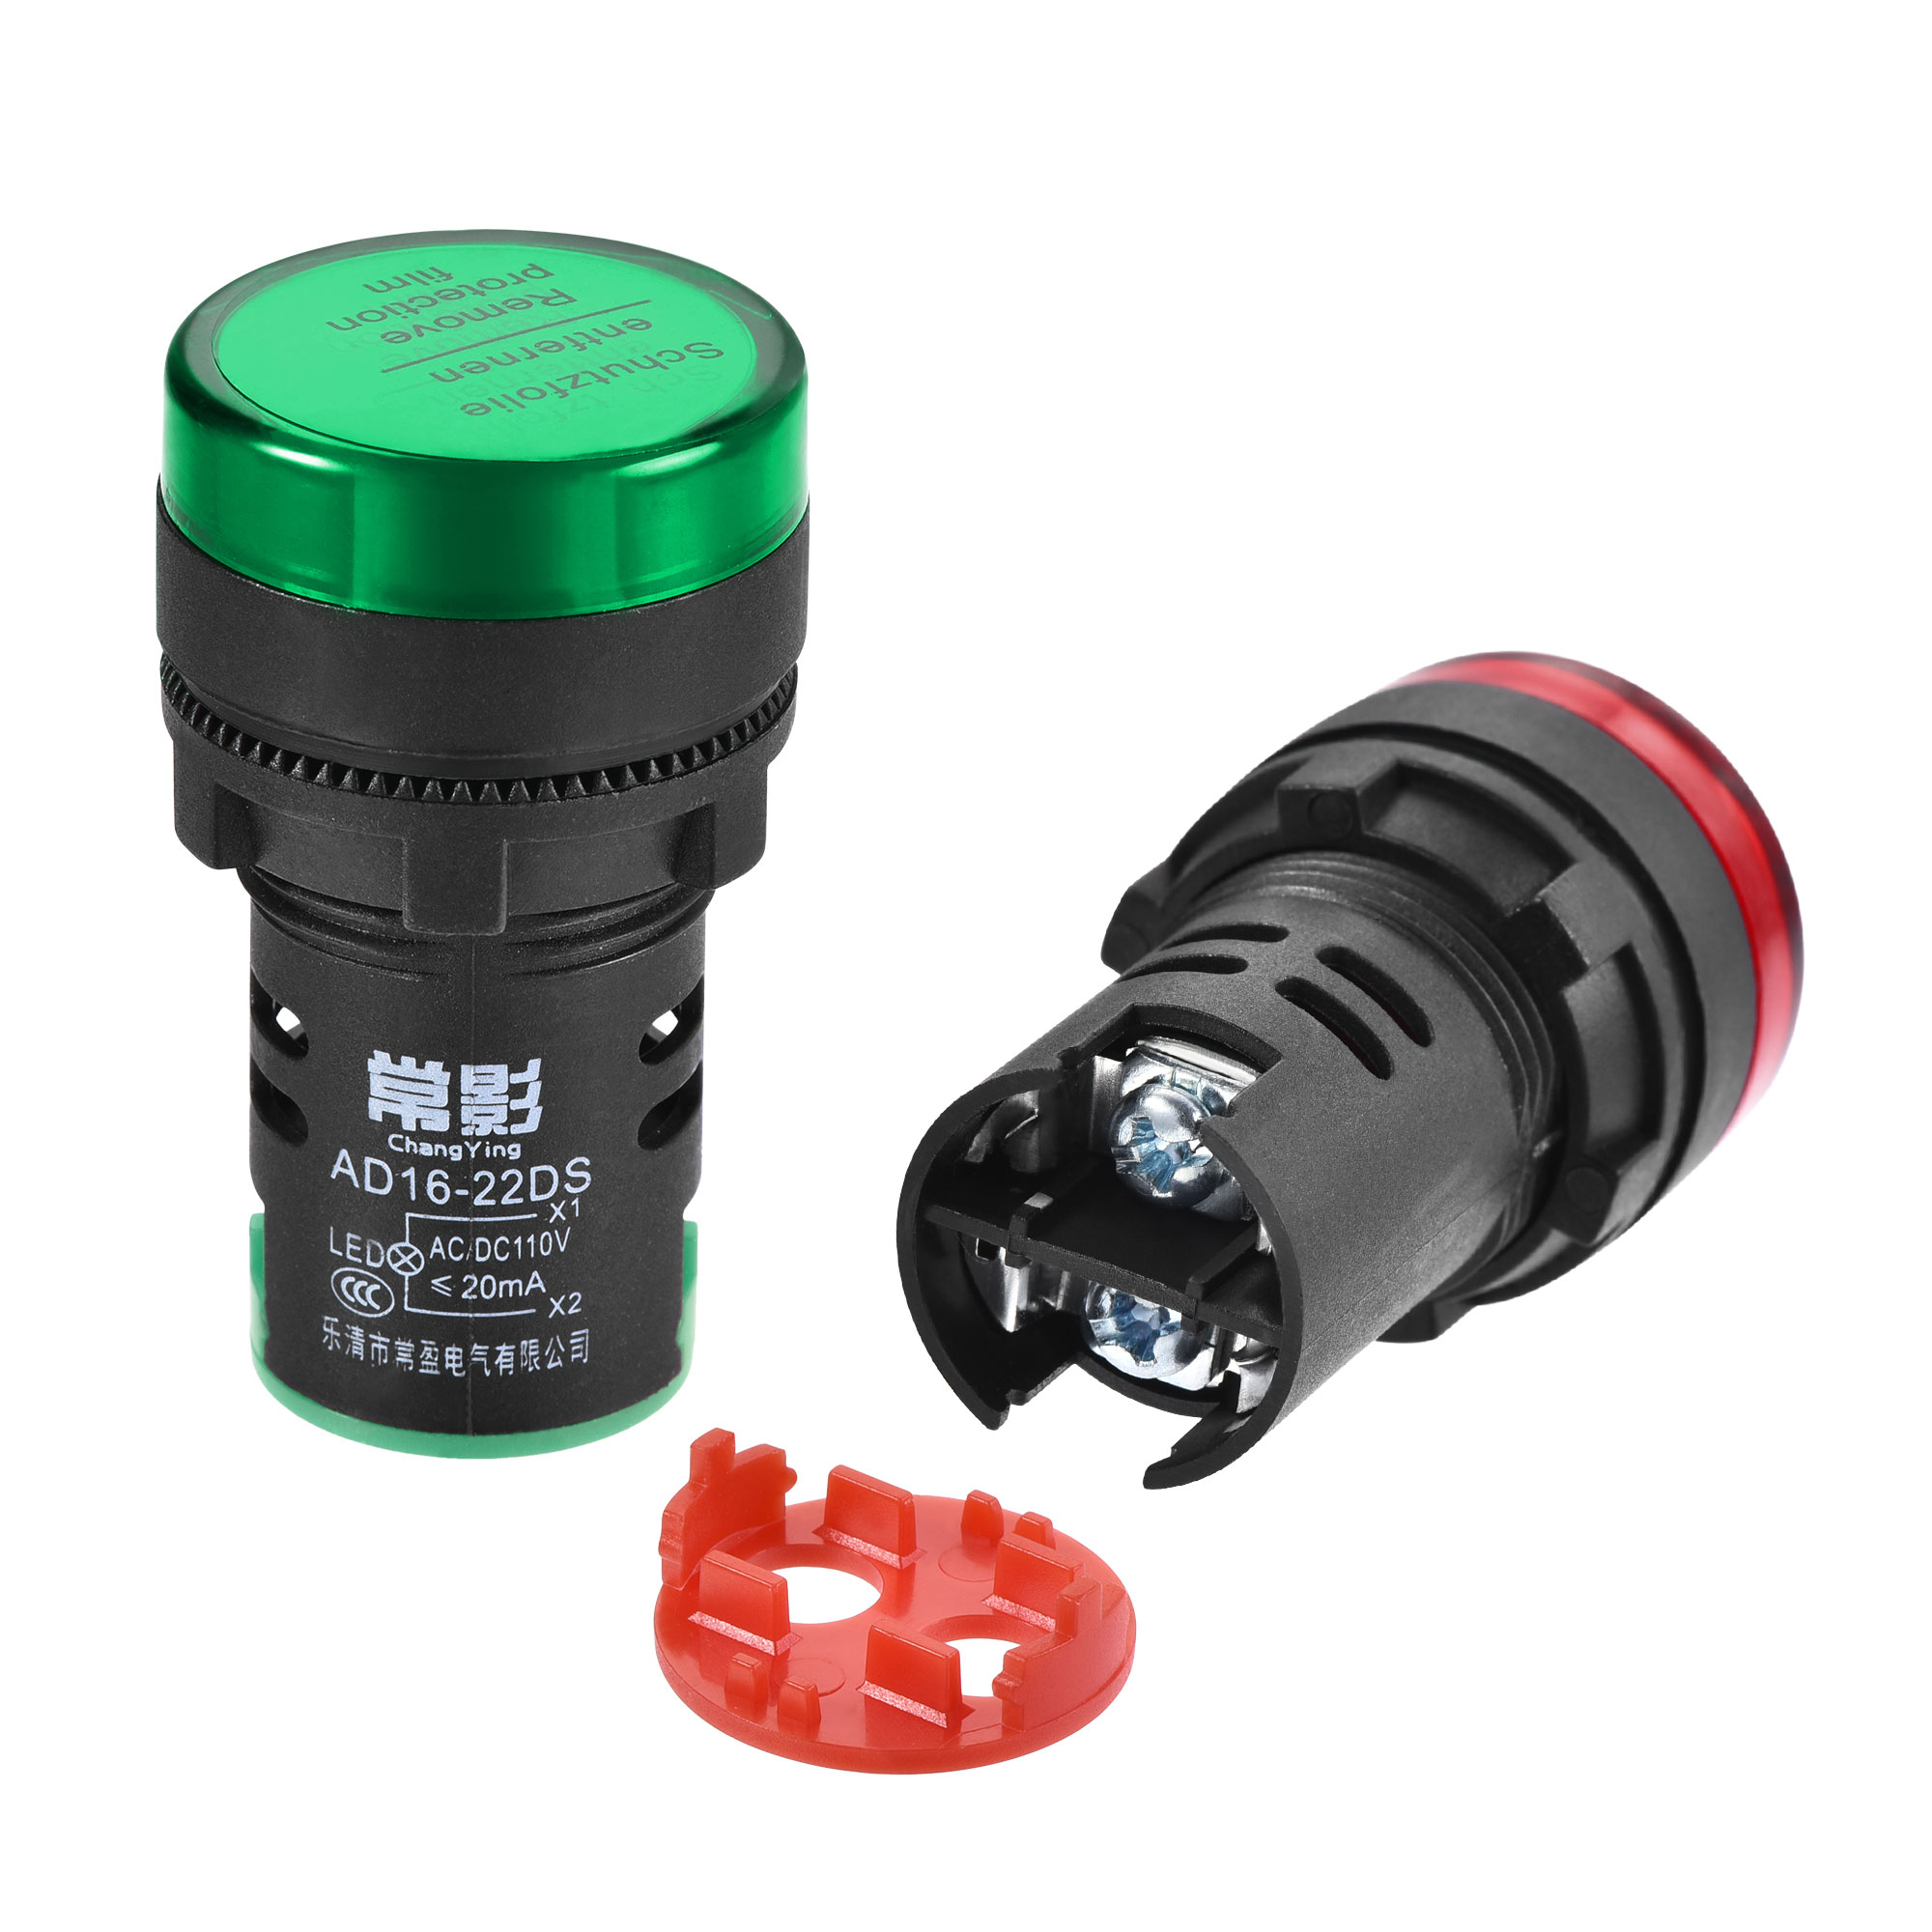 AC/DC 110V Indicator Lights, Dust Cover IP54, Red Green - 2 Colors, 2Pcs